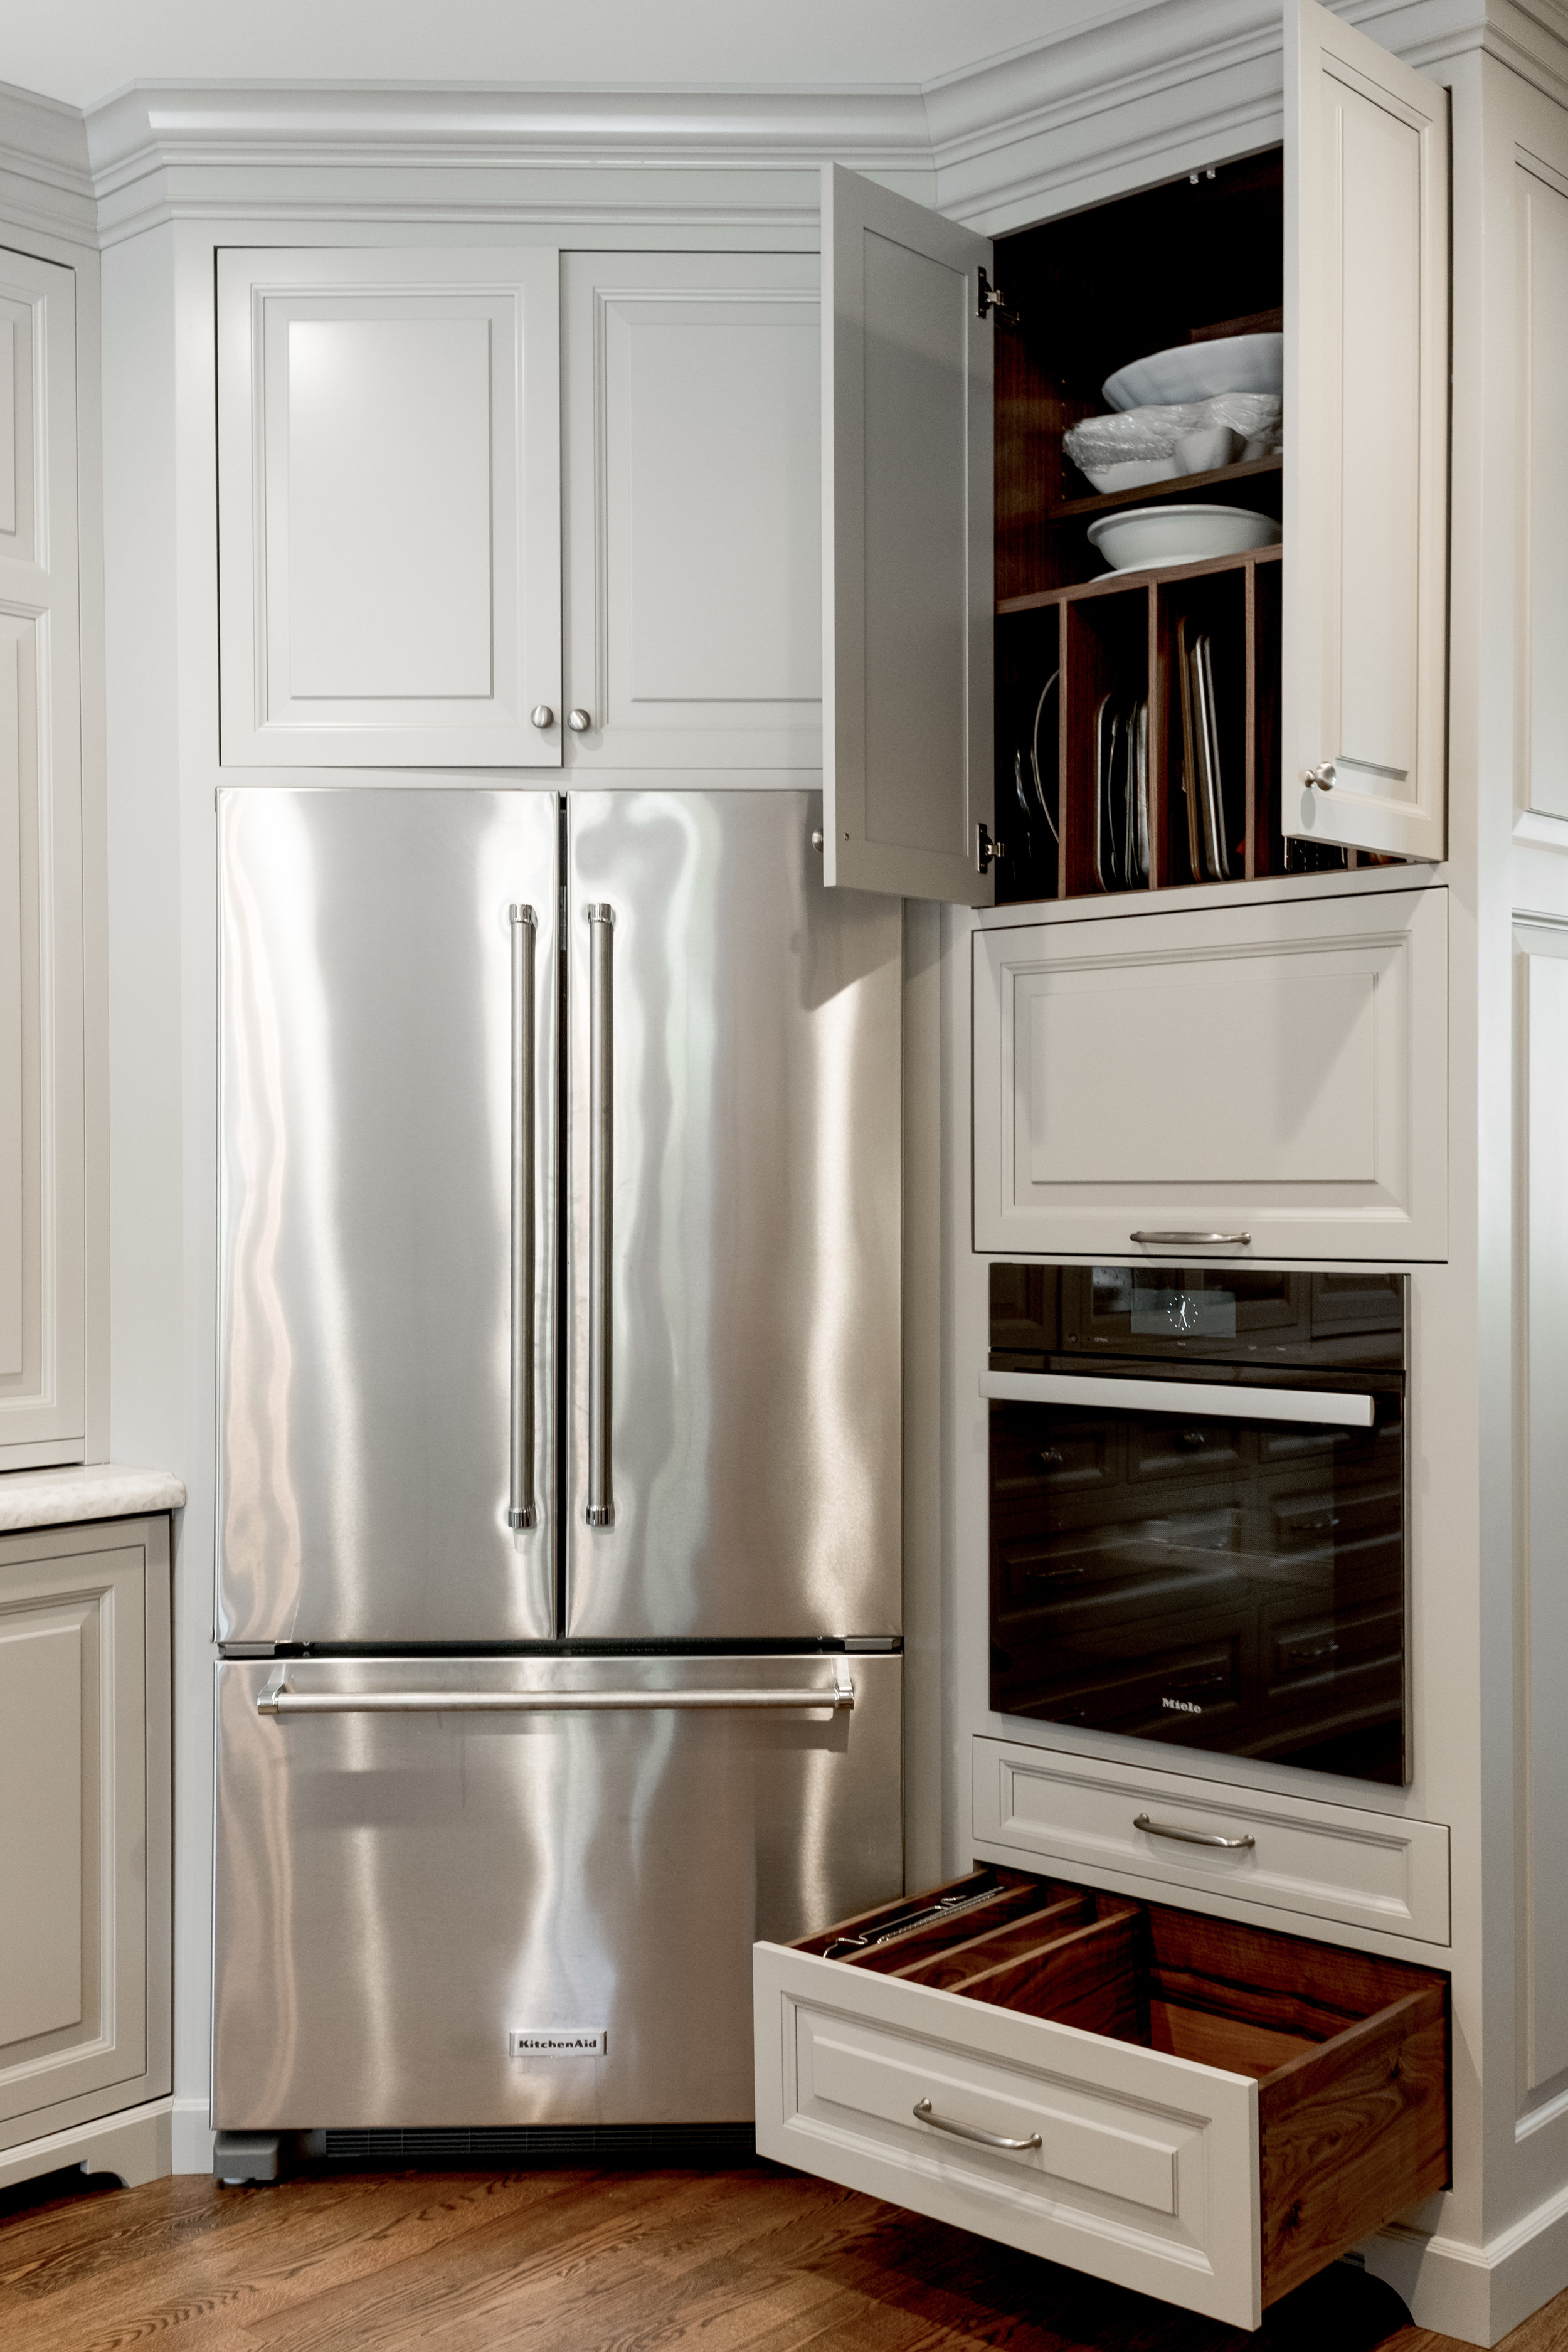 Kitchen cabinets in revere pewter and drawer organization